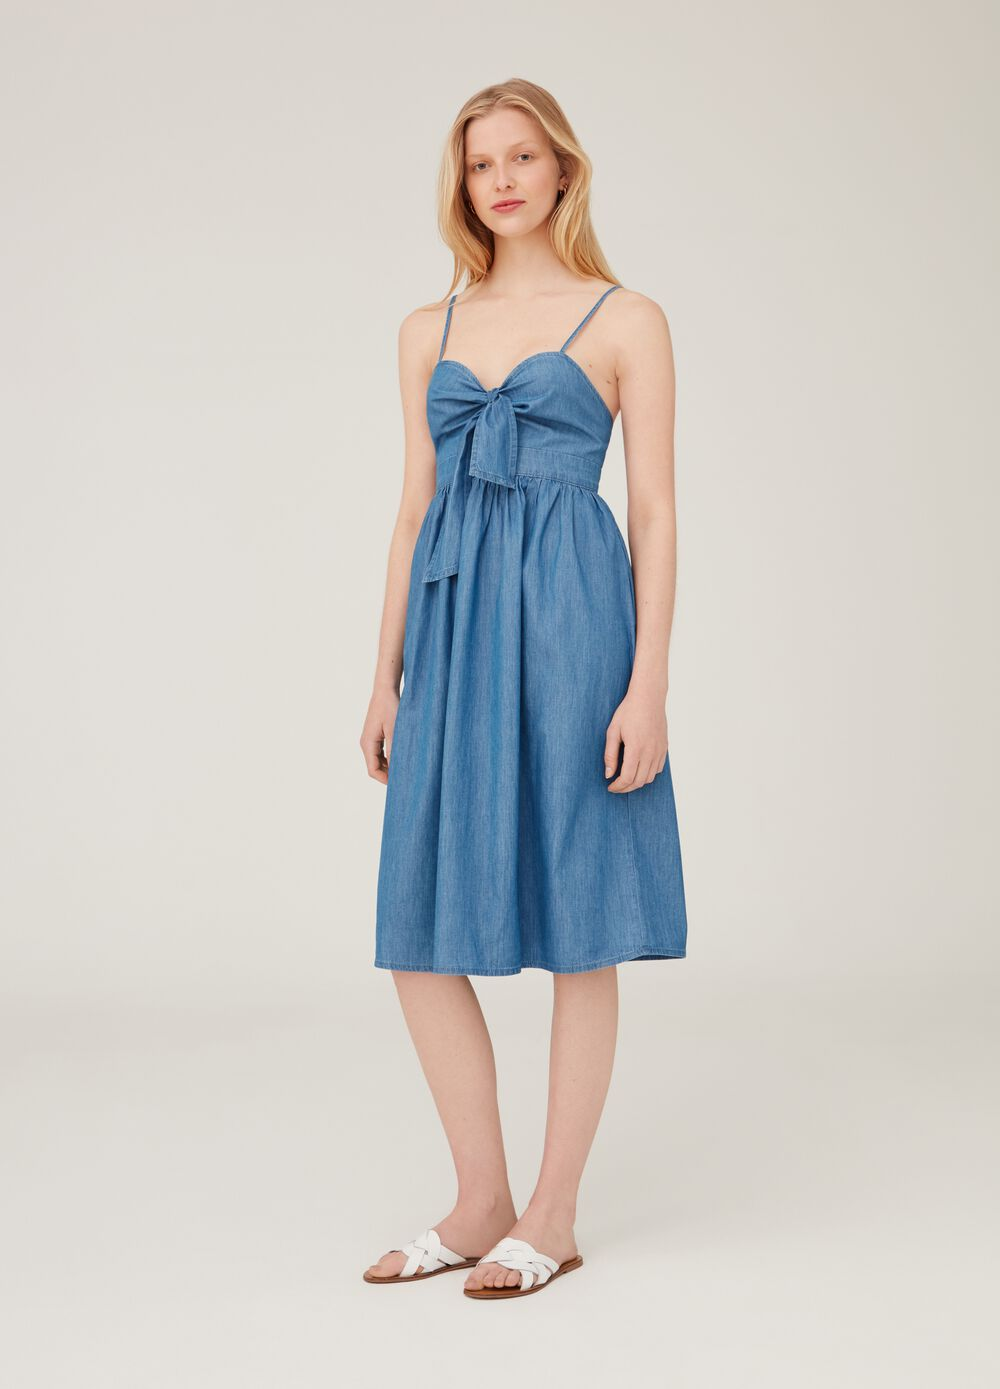 Denim dress with spaghetti straps and knot